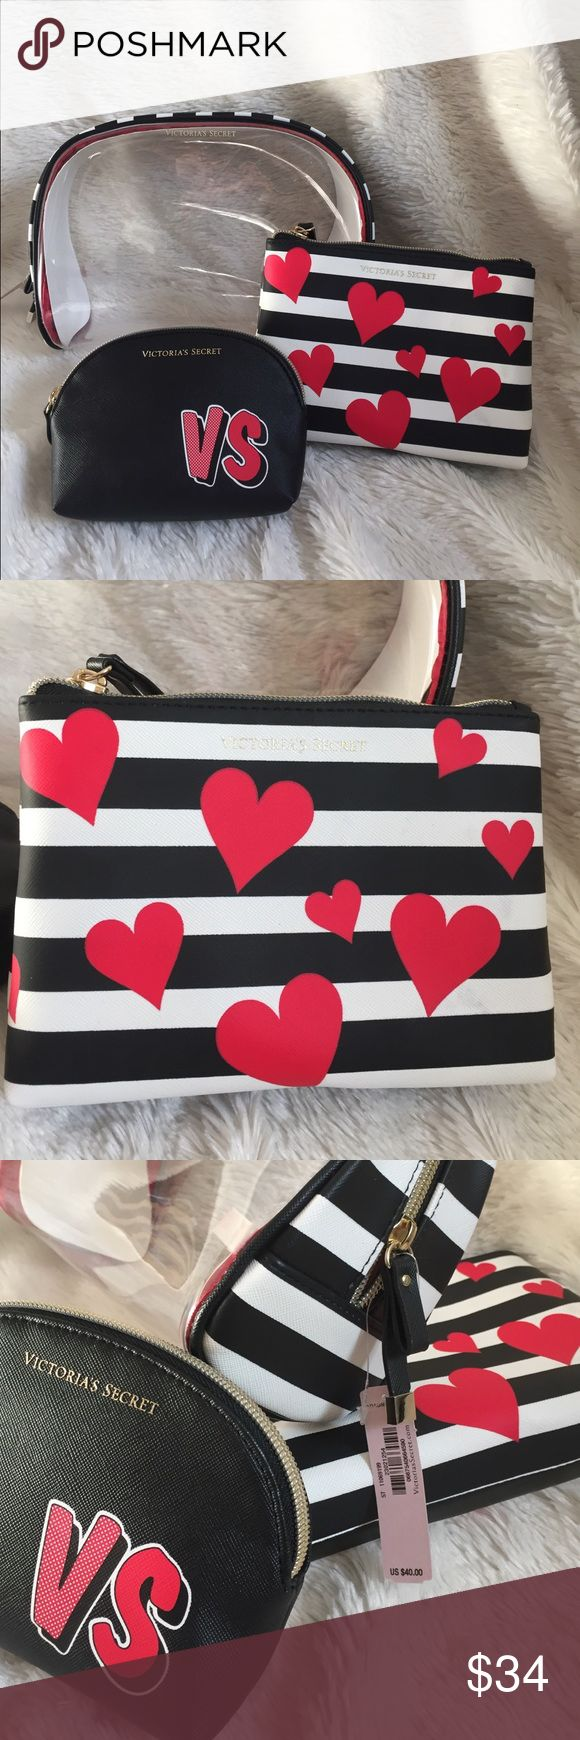 "❤ NWT • VICTORIA'S SECRET COSMETIC BAGS ❤ NWT • SET OF 3 VICTORIA'S SECRET COSMETIC BAGS • LARGE BAG MEASURES 9.5"" x 6.75"" - HAS BLACK & WHITE STRIPES • BLACK & WHITE STRIPES WITH HEARTS MEASURES 7"" x 5.25"" - RED INTERIOR • SMALLEST MEASURES 6"" x 4.5"" - BLACK WITH VS IN RED & RED & WHITE DOTS - RED INTERIOR Victoria's Secret Bags Cosmetic Bags & Cases"